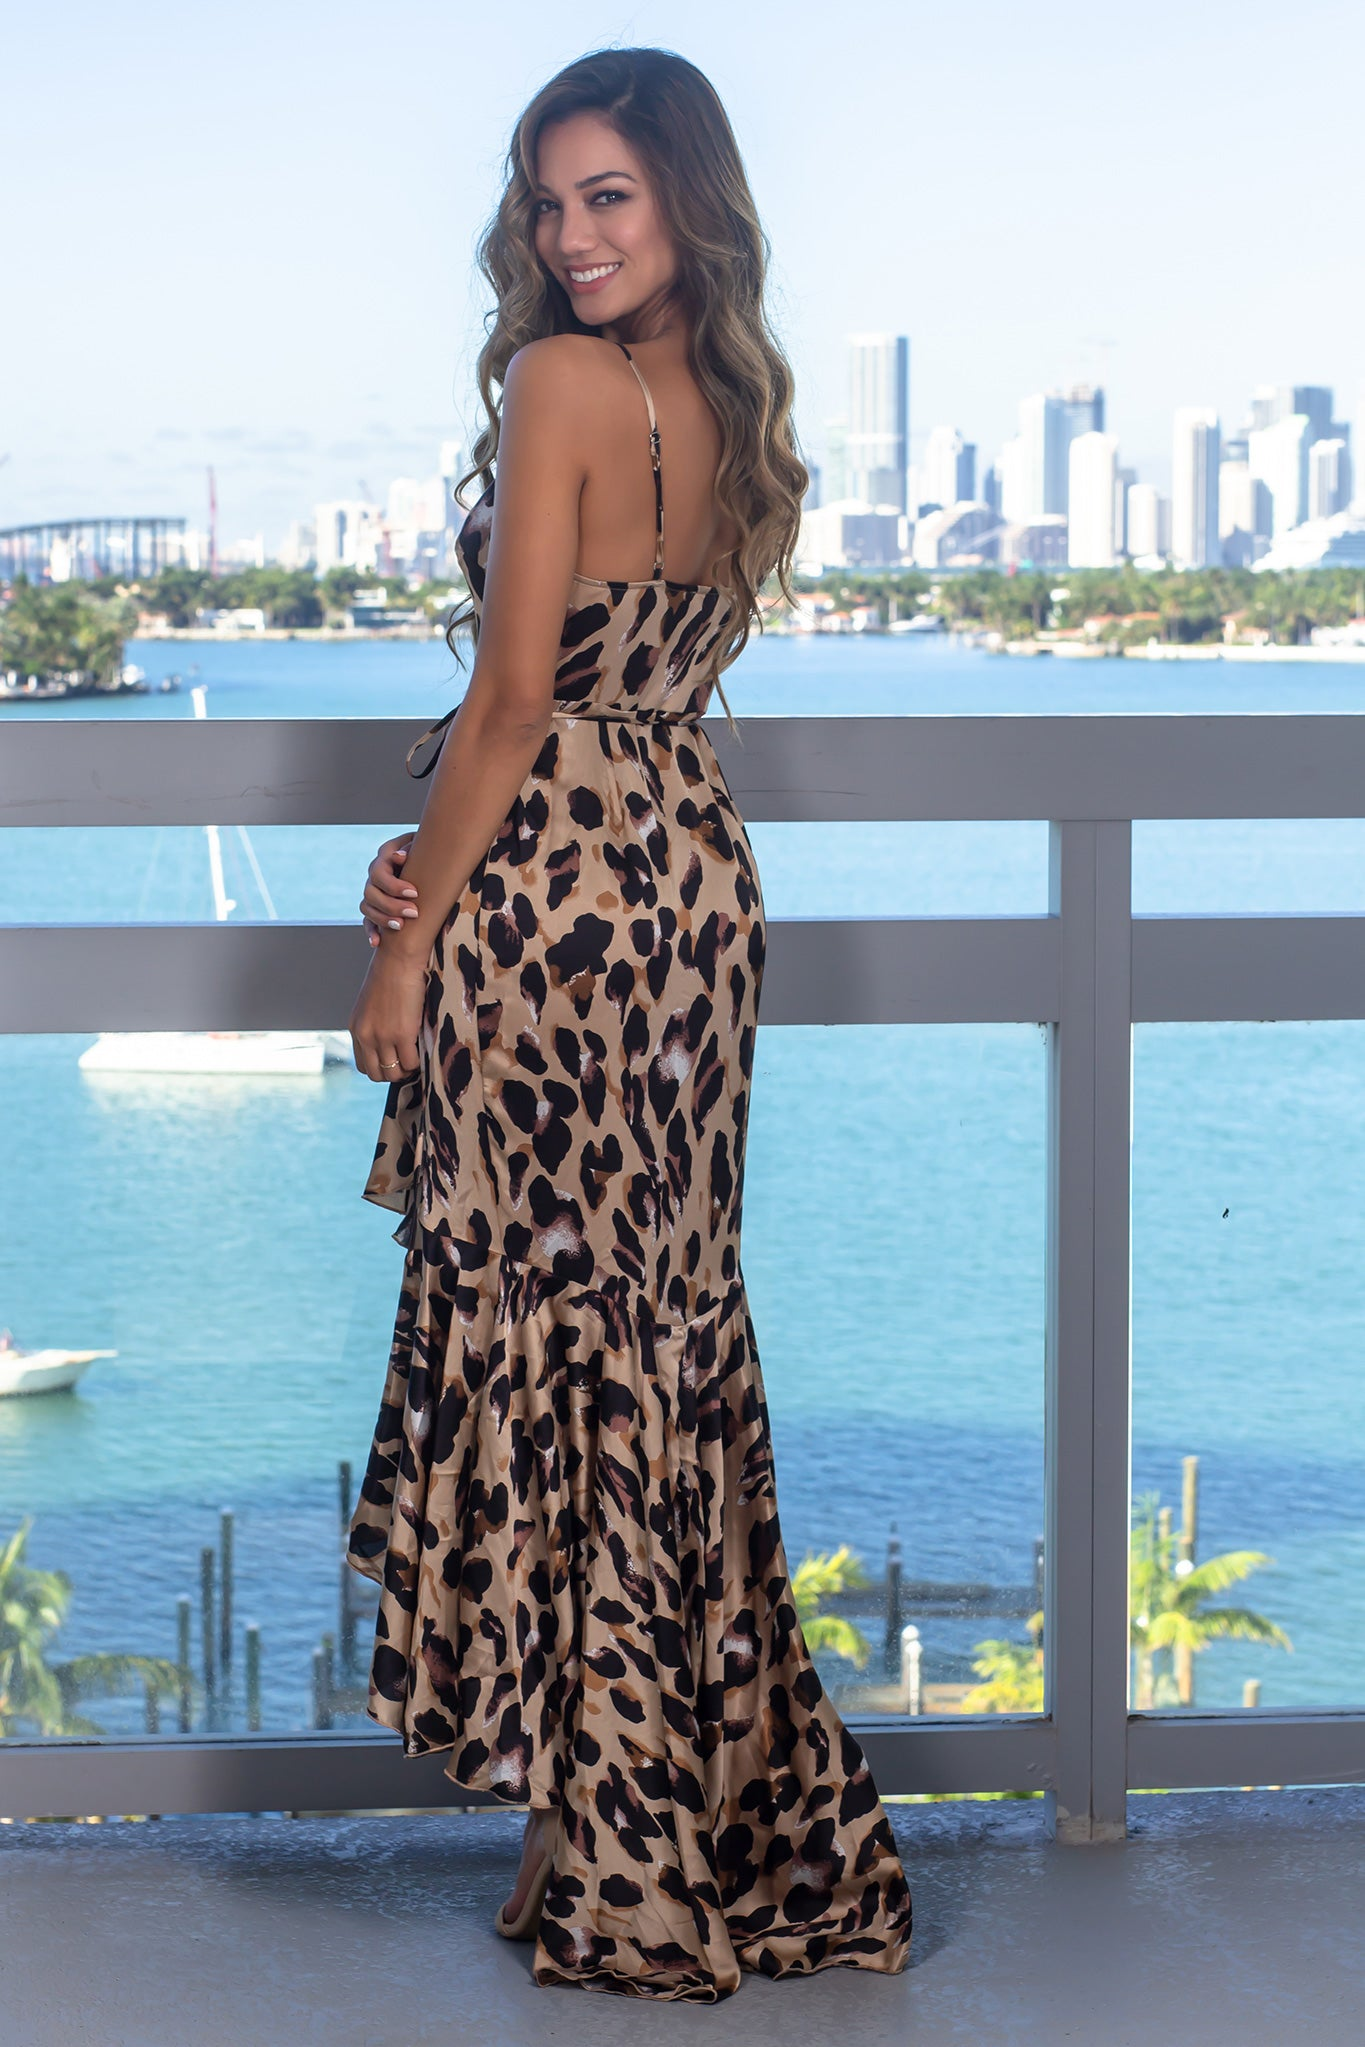 Beige Cheetah Print Wrap Dress